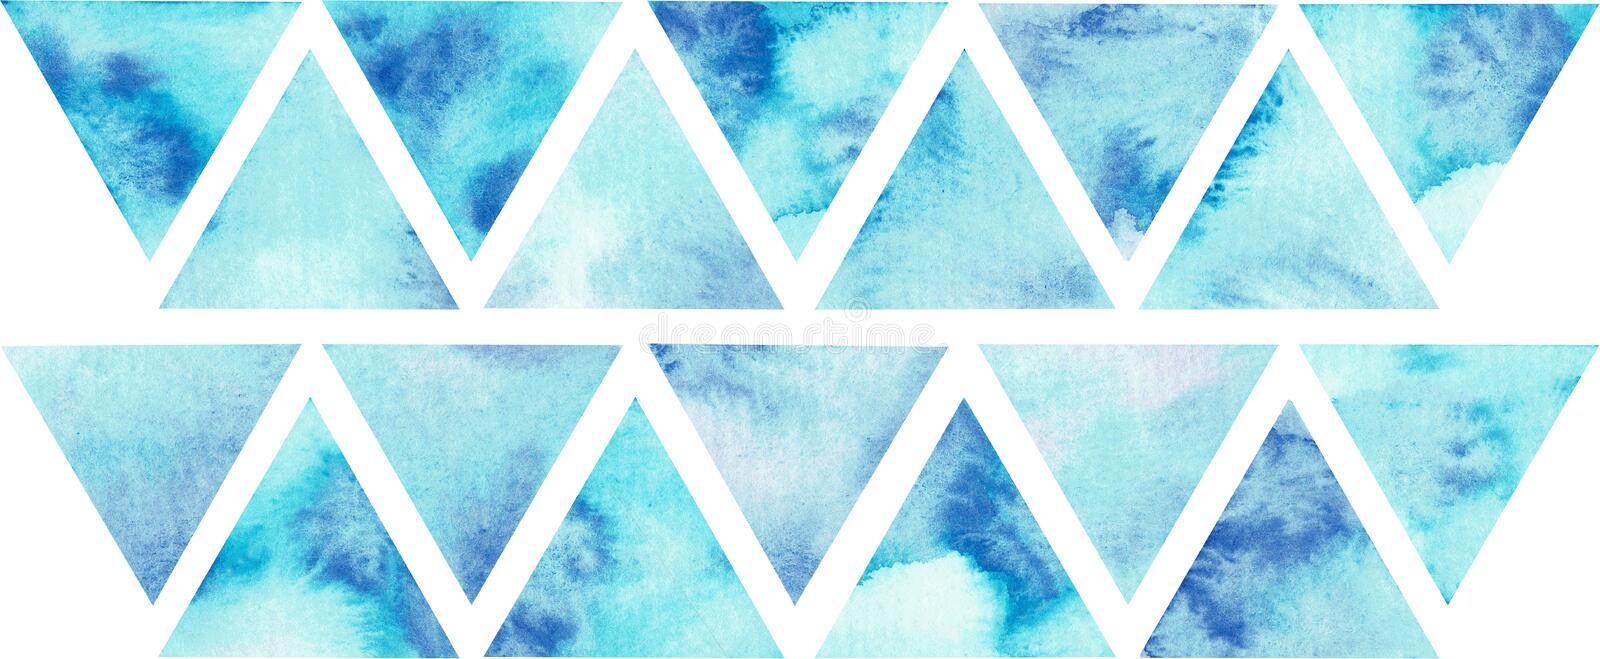 Blue triangles composition, watercolor background. Abstract hand-drawn illustration. Watercolor composition for scrapbook elements with empty space for text royalty free stock photos